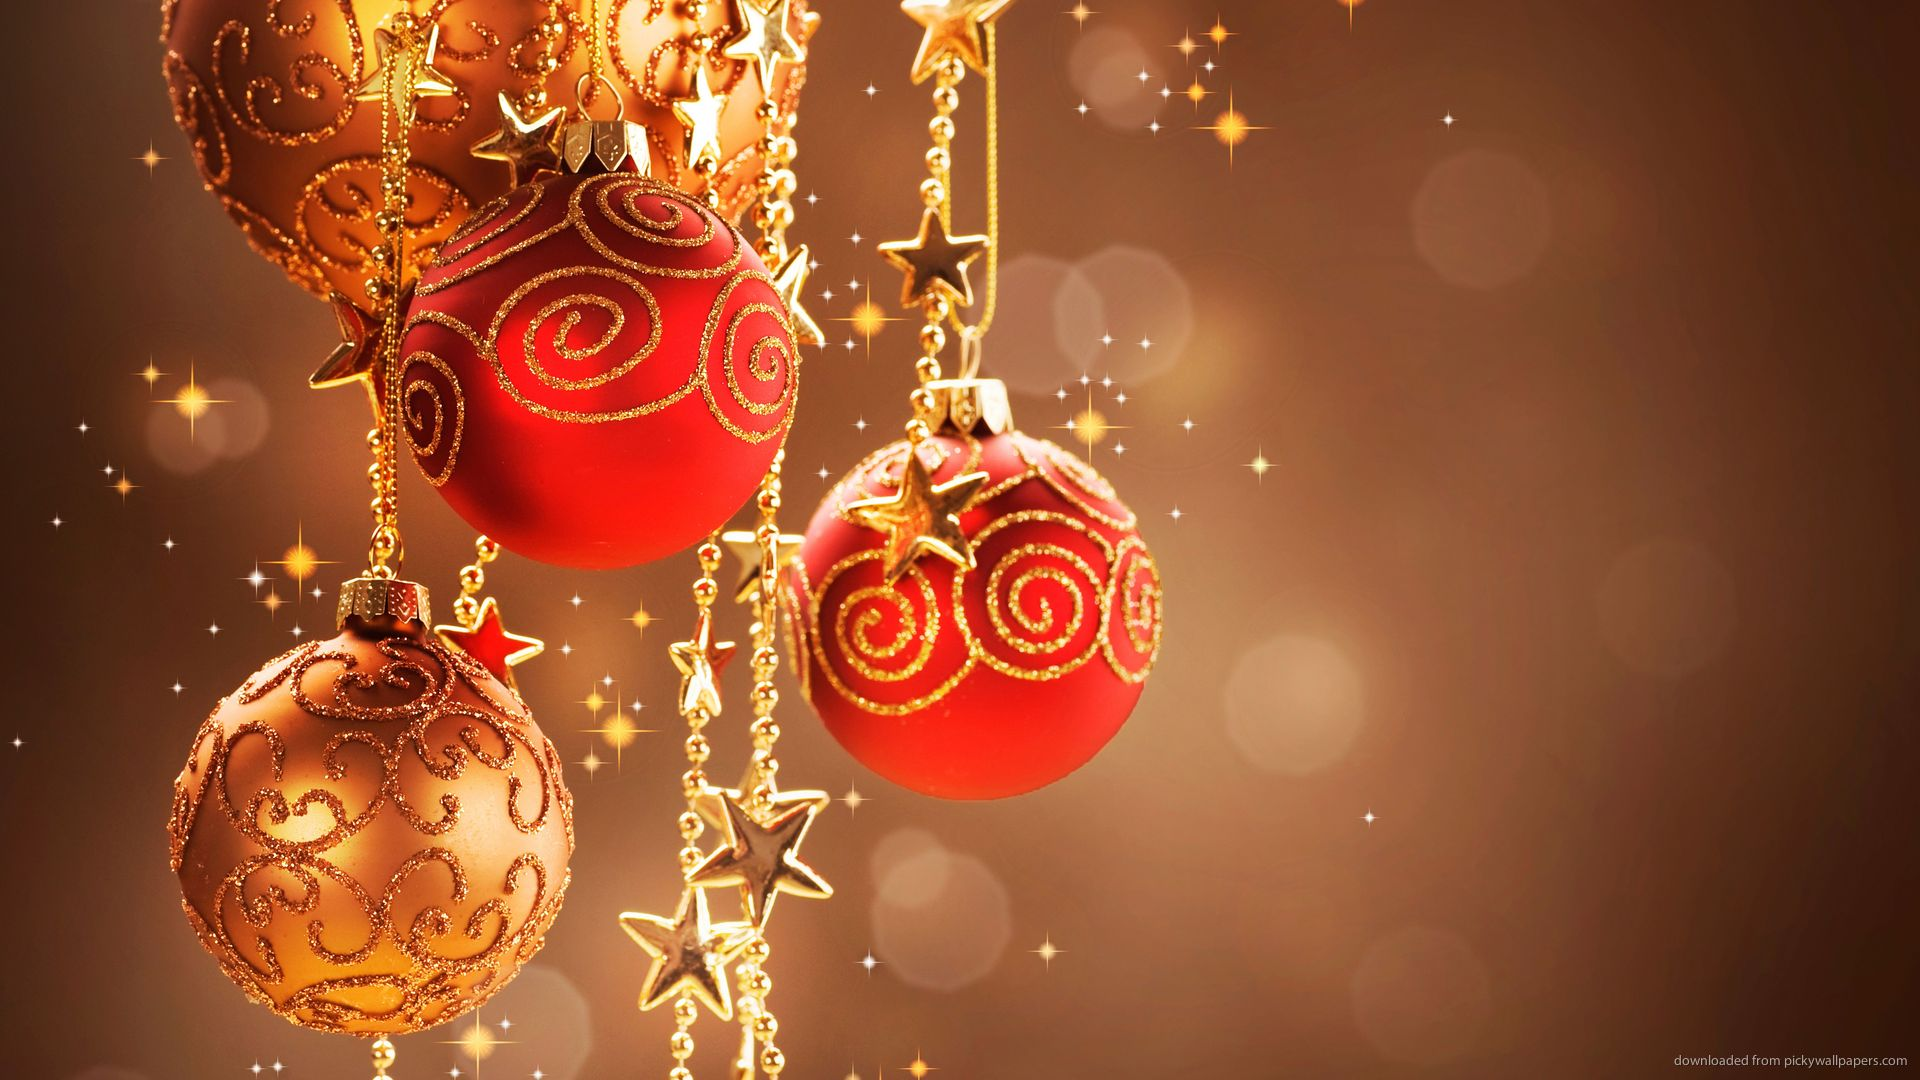 Christmas Decorations Ultra HD Picture For iPhone Blackberry iPad 1920x1080